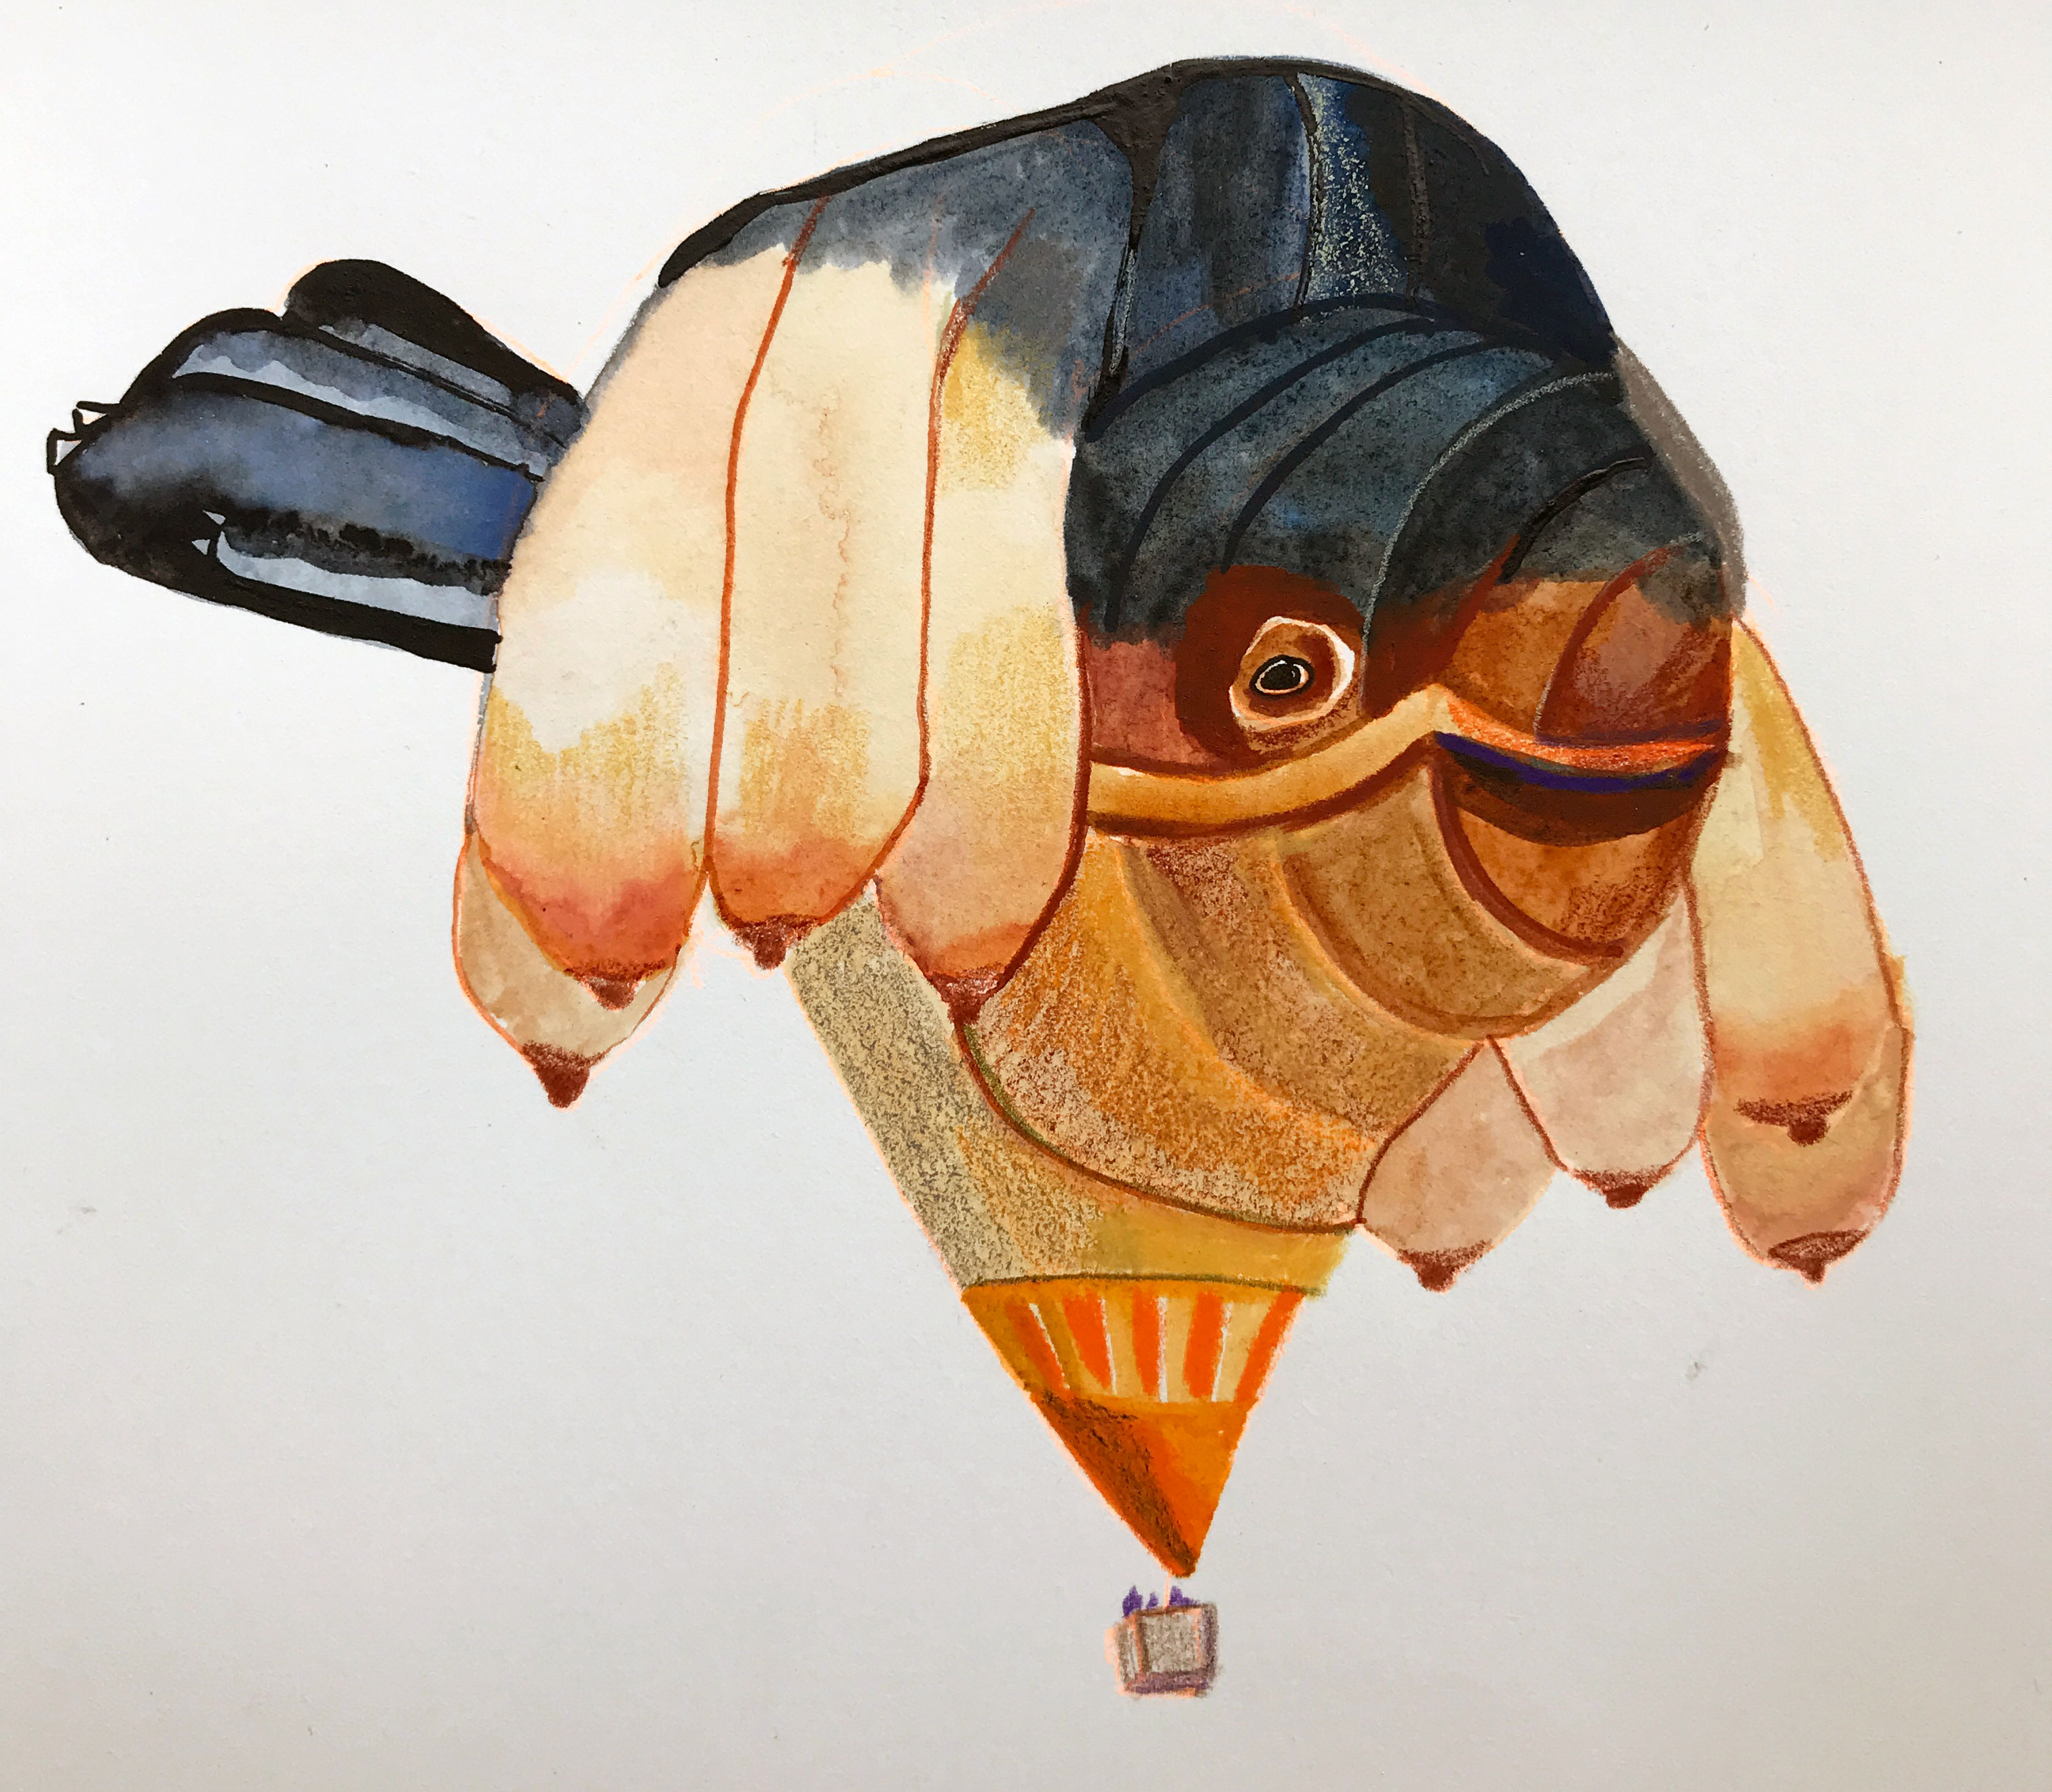 Skywhale resized